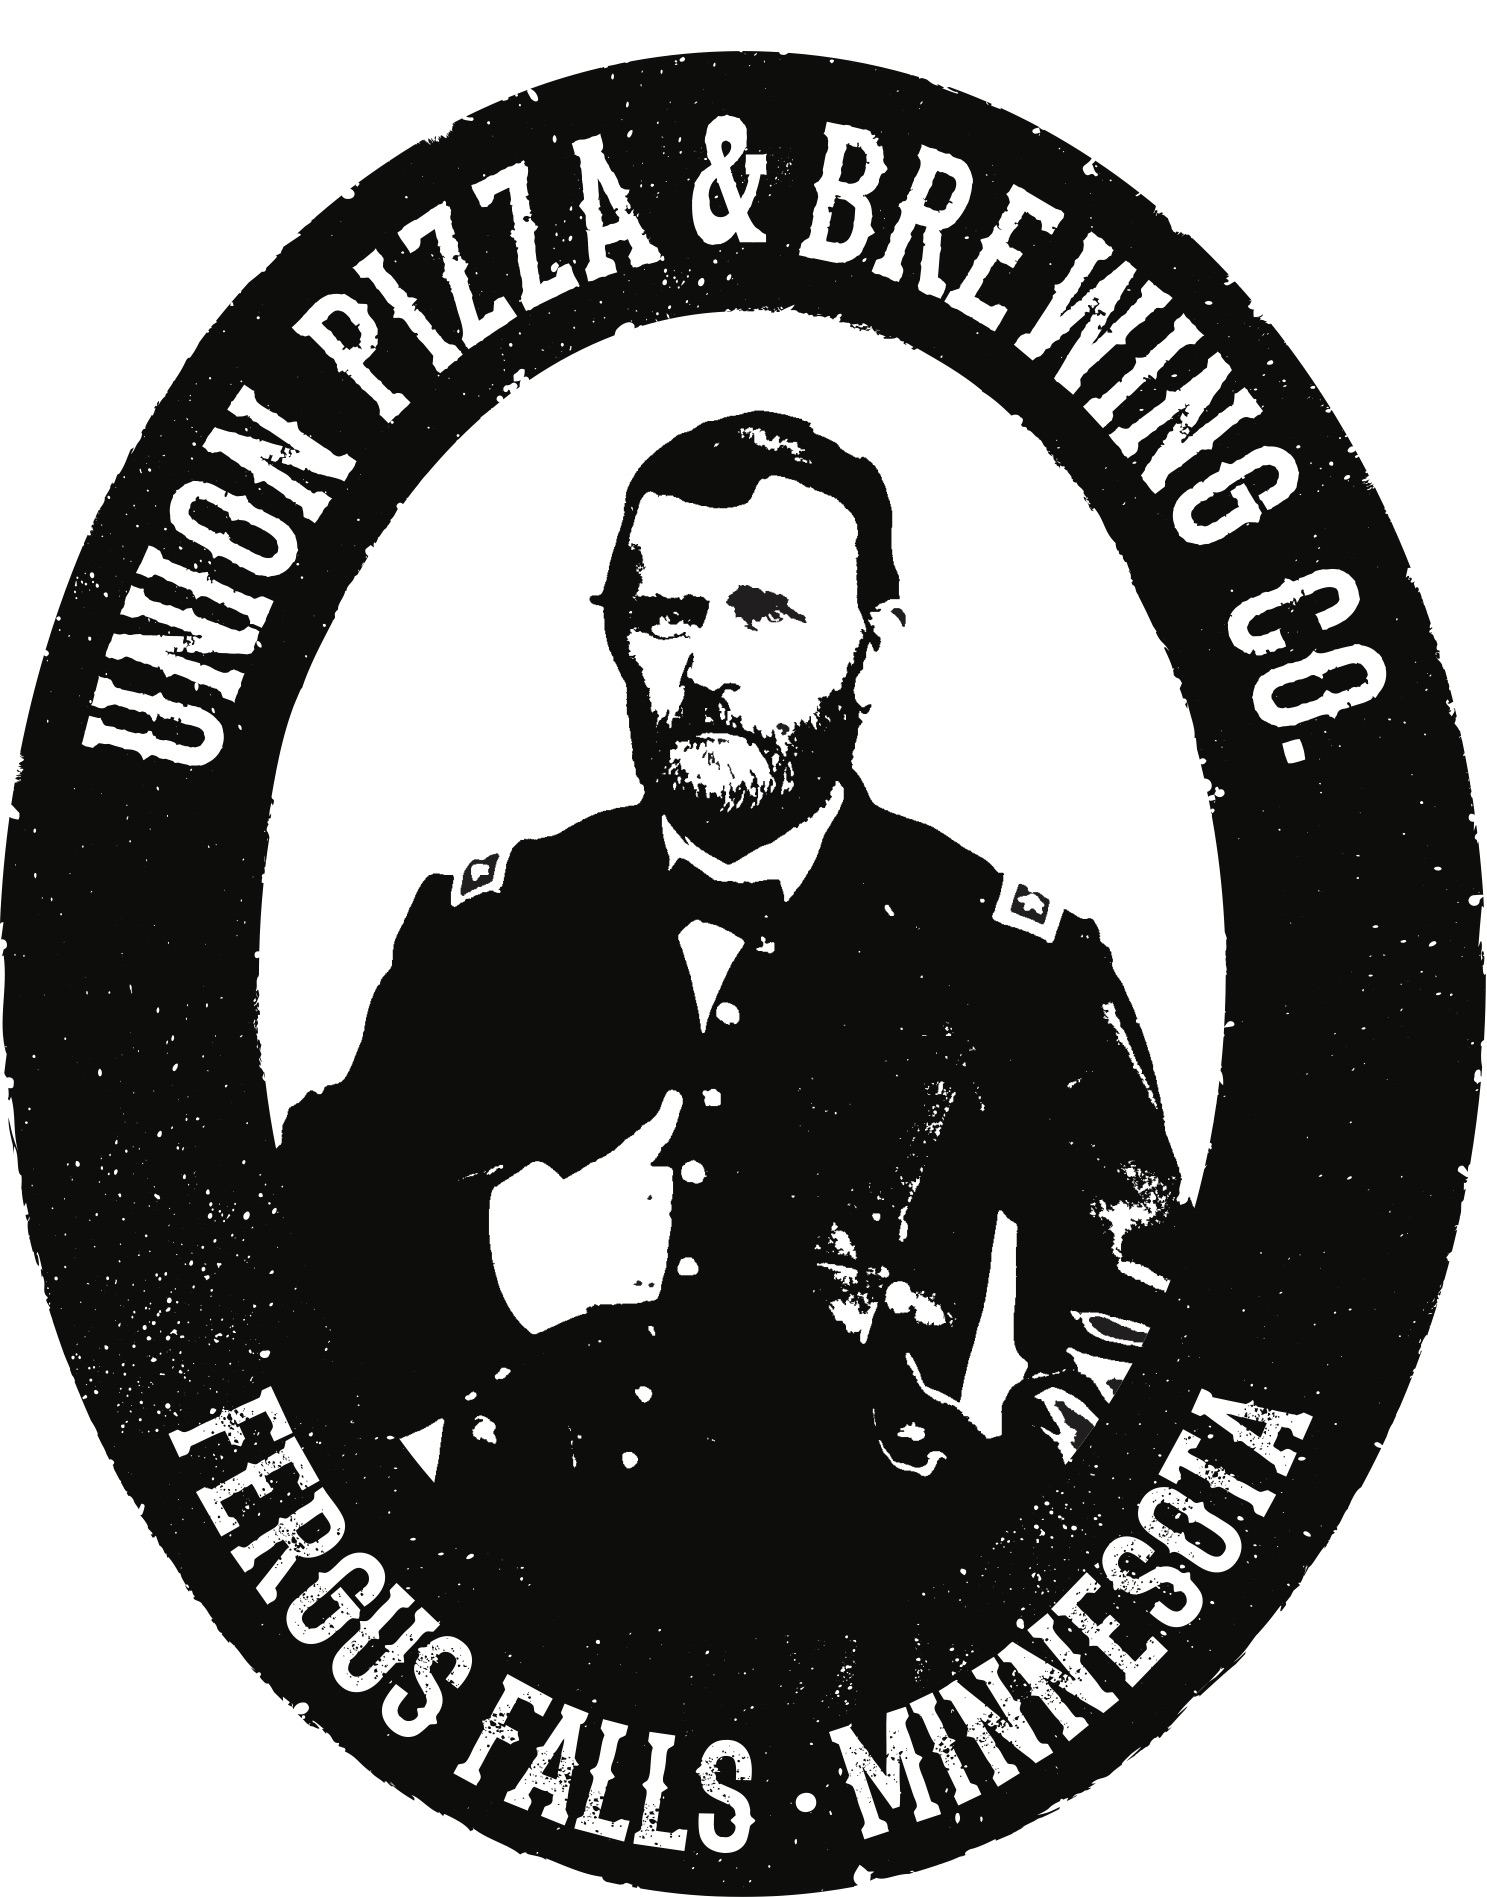 Union Pizza and Brewing Co.